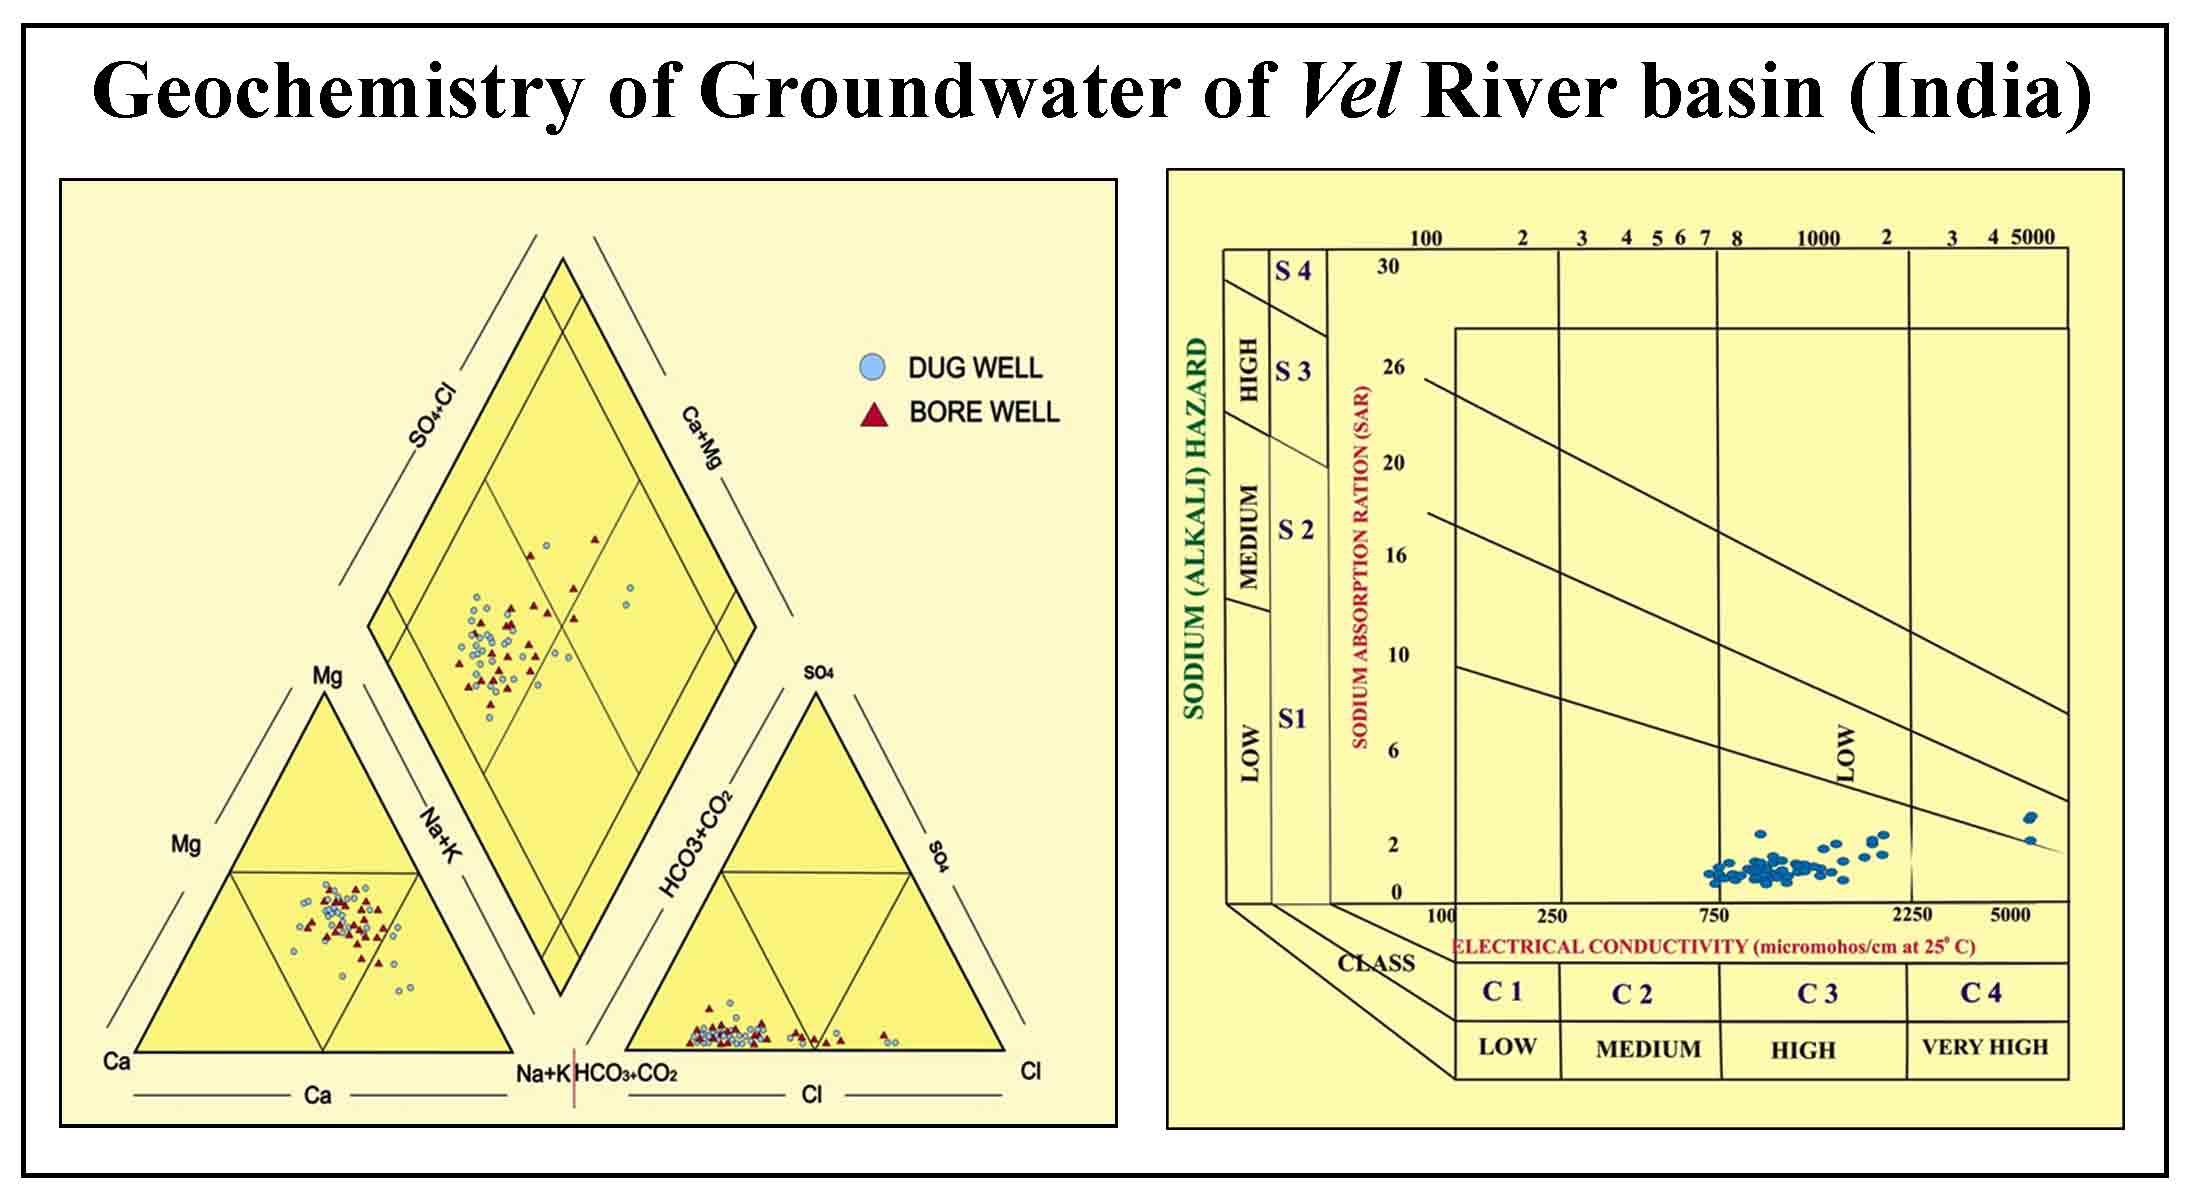 Assessment of Groundwater Geochemistry of Vel River basin, Western Maharashtra, India